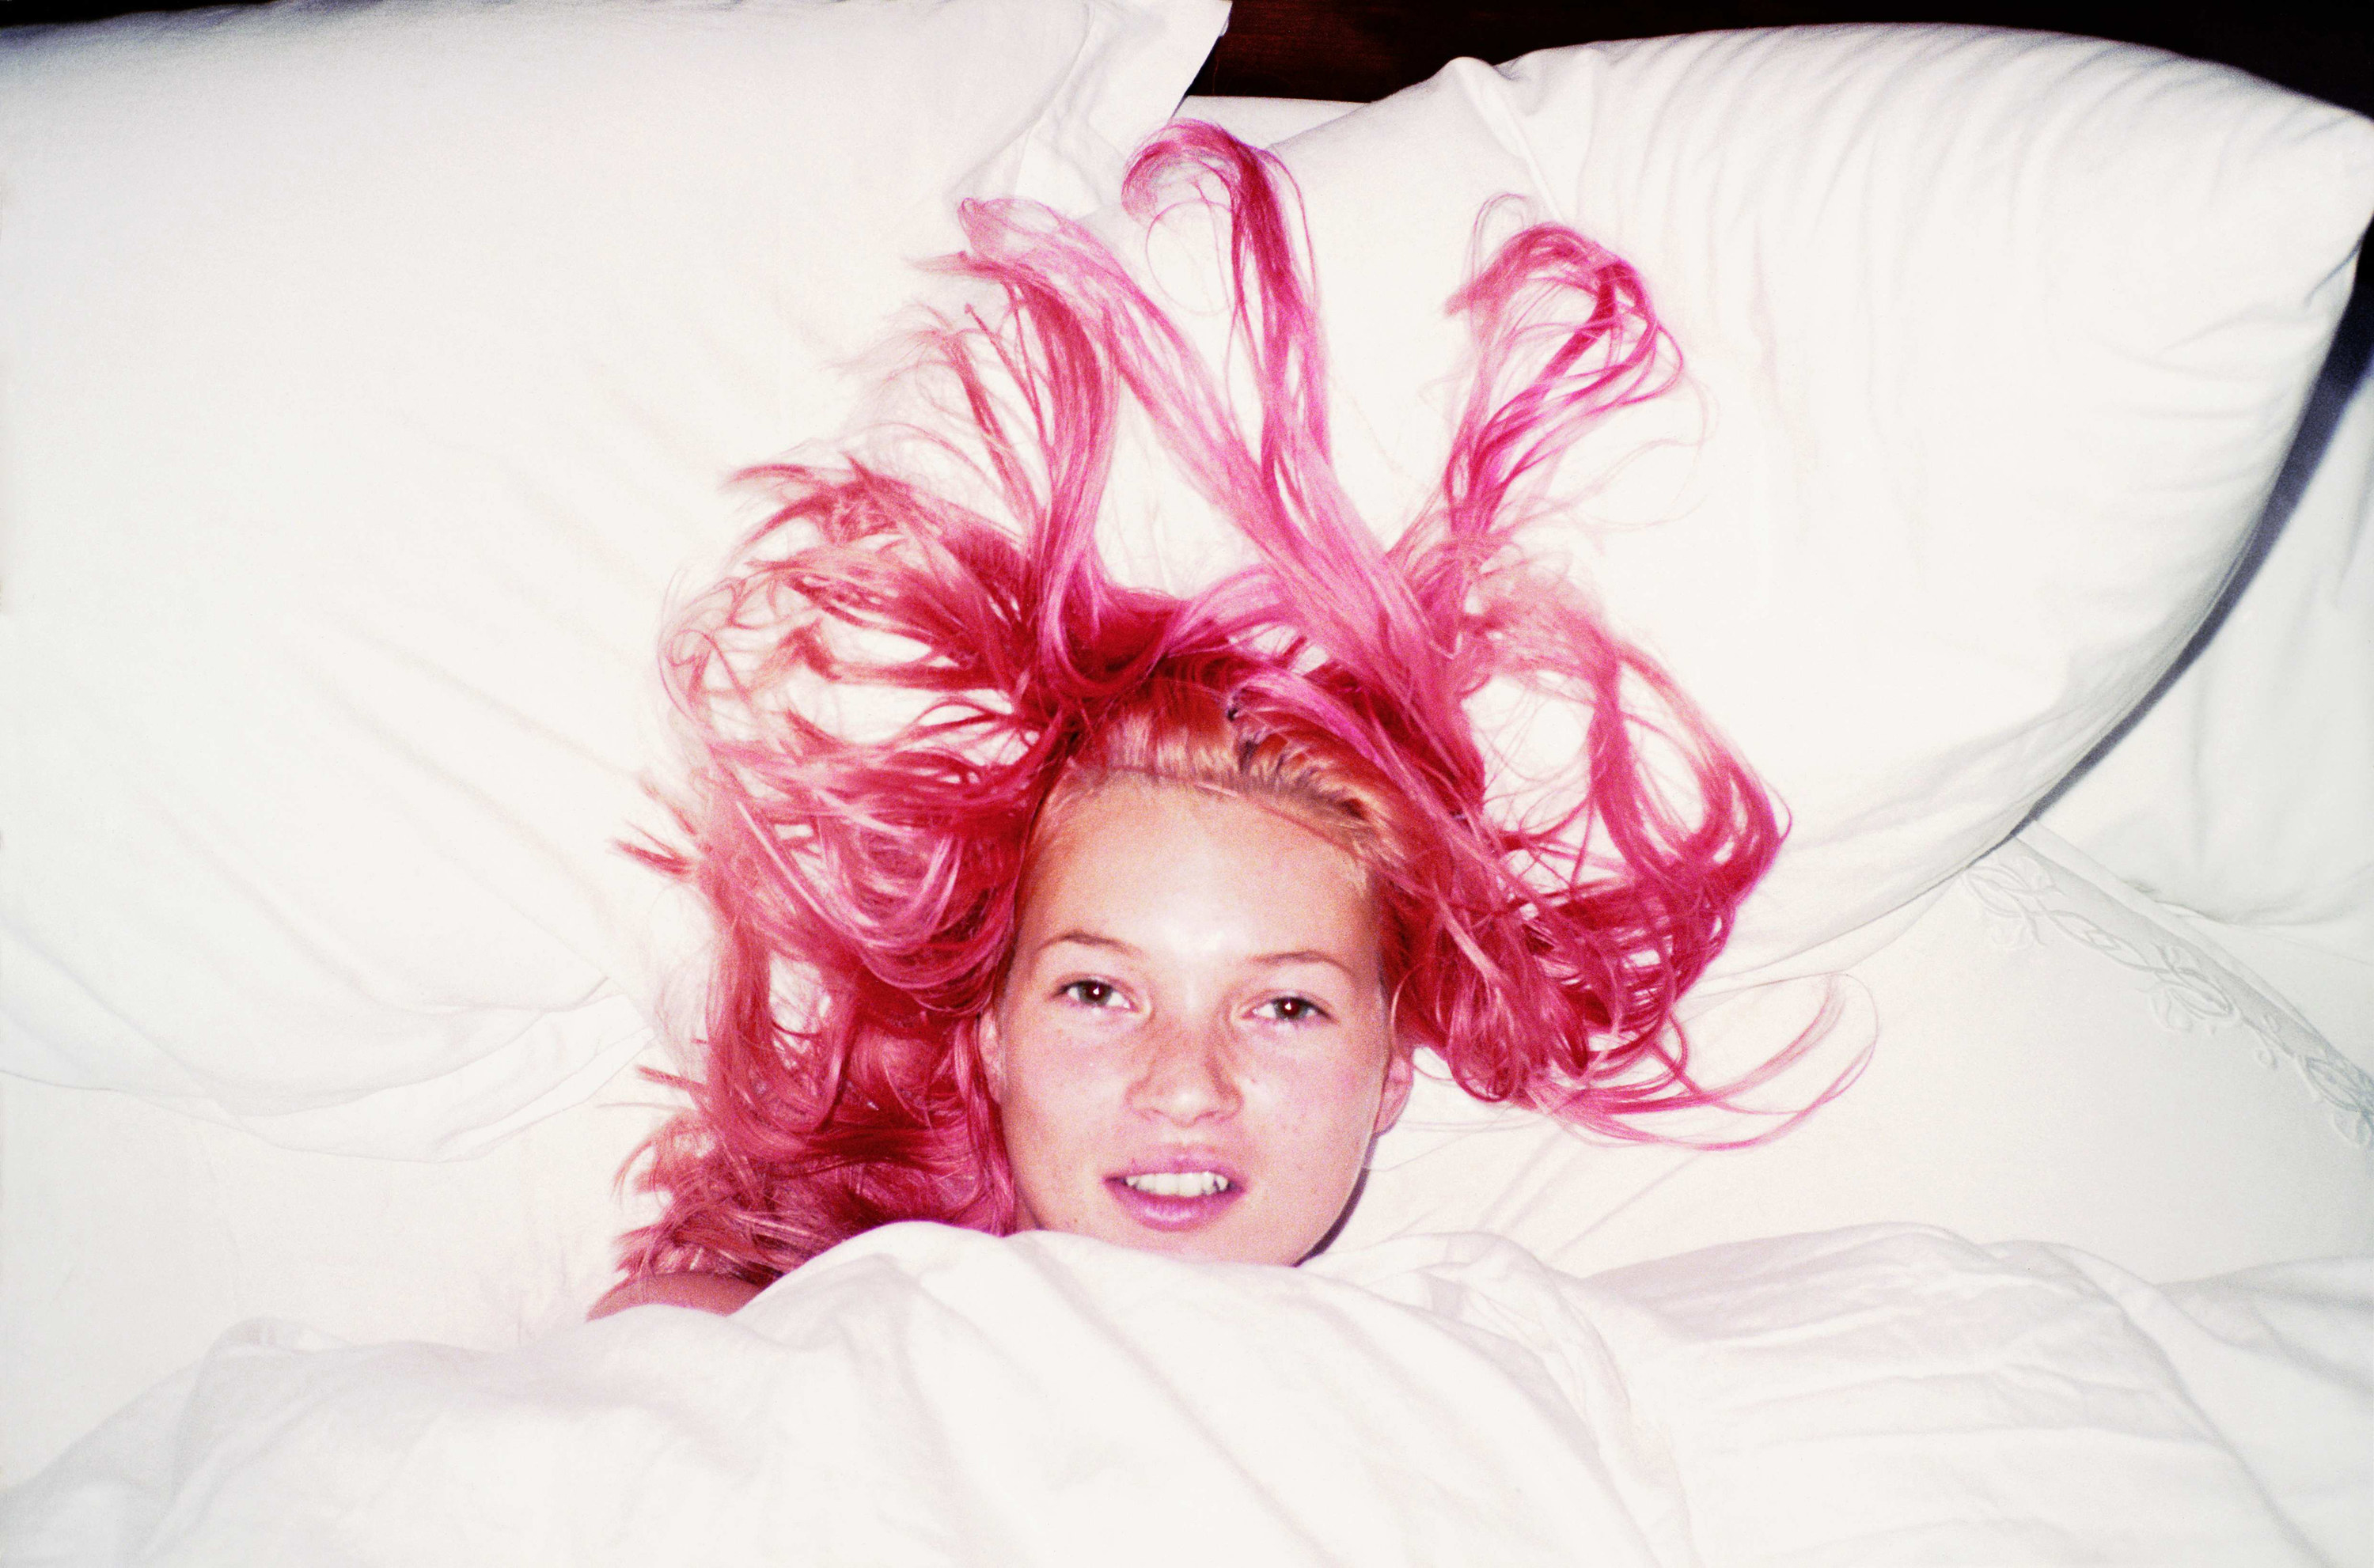 Kate Moss with pink hair wrapped up in blankets in bed